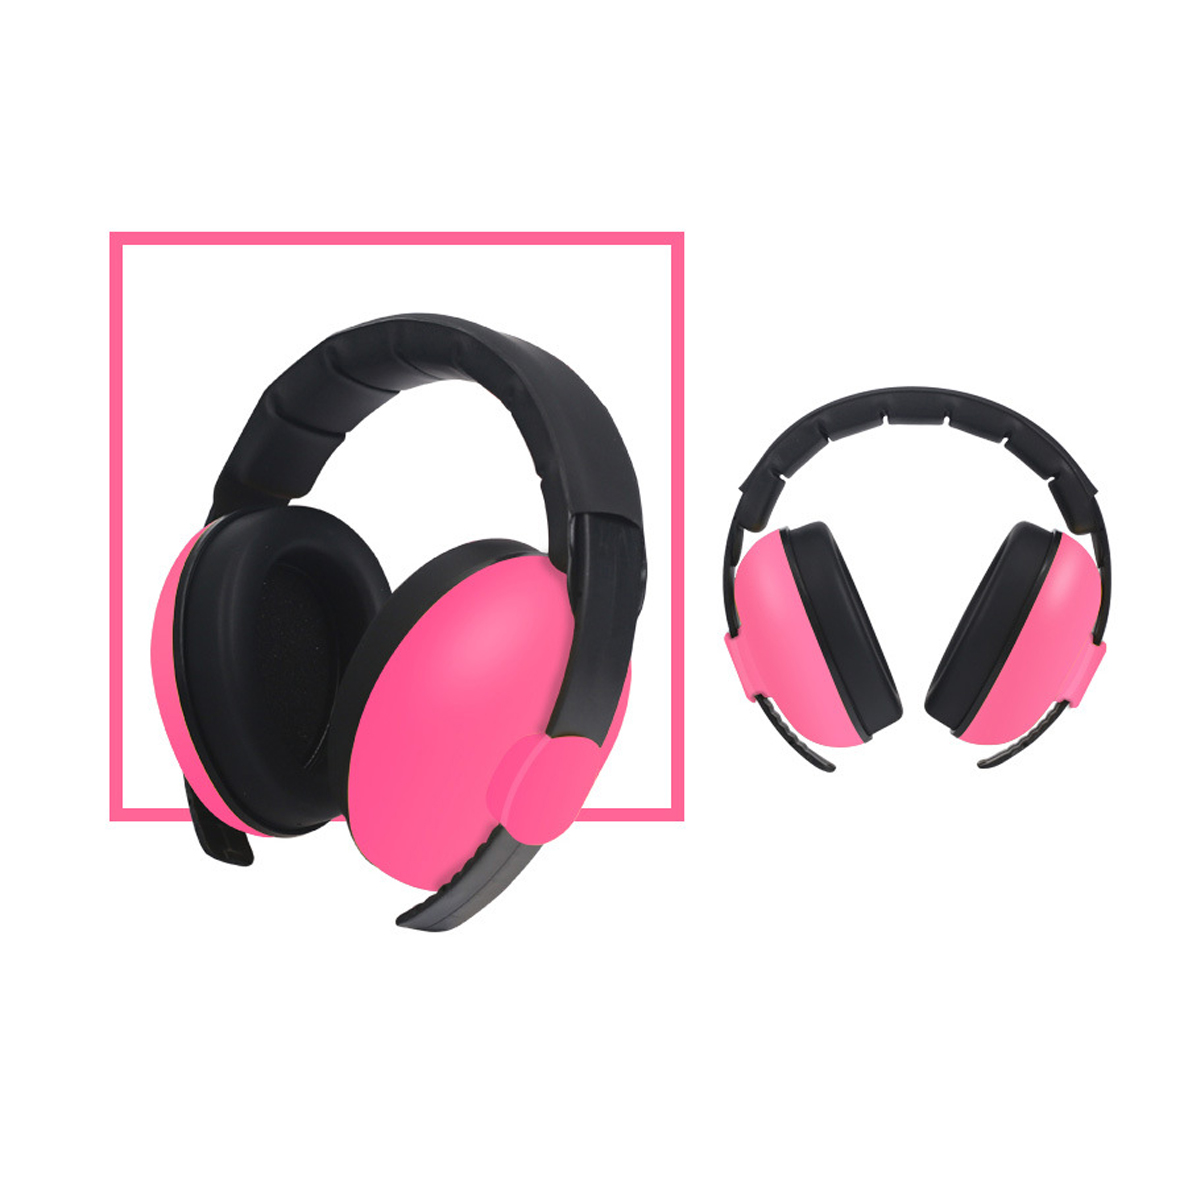 Baby-Infant-Earmuffs-Ear-muffs-Sleeping-Hearing-Protection-Noise-Reducing-Plug